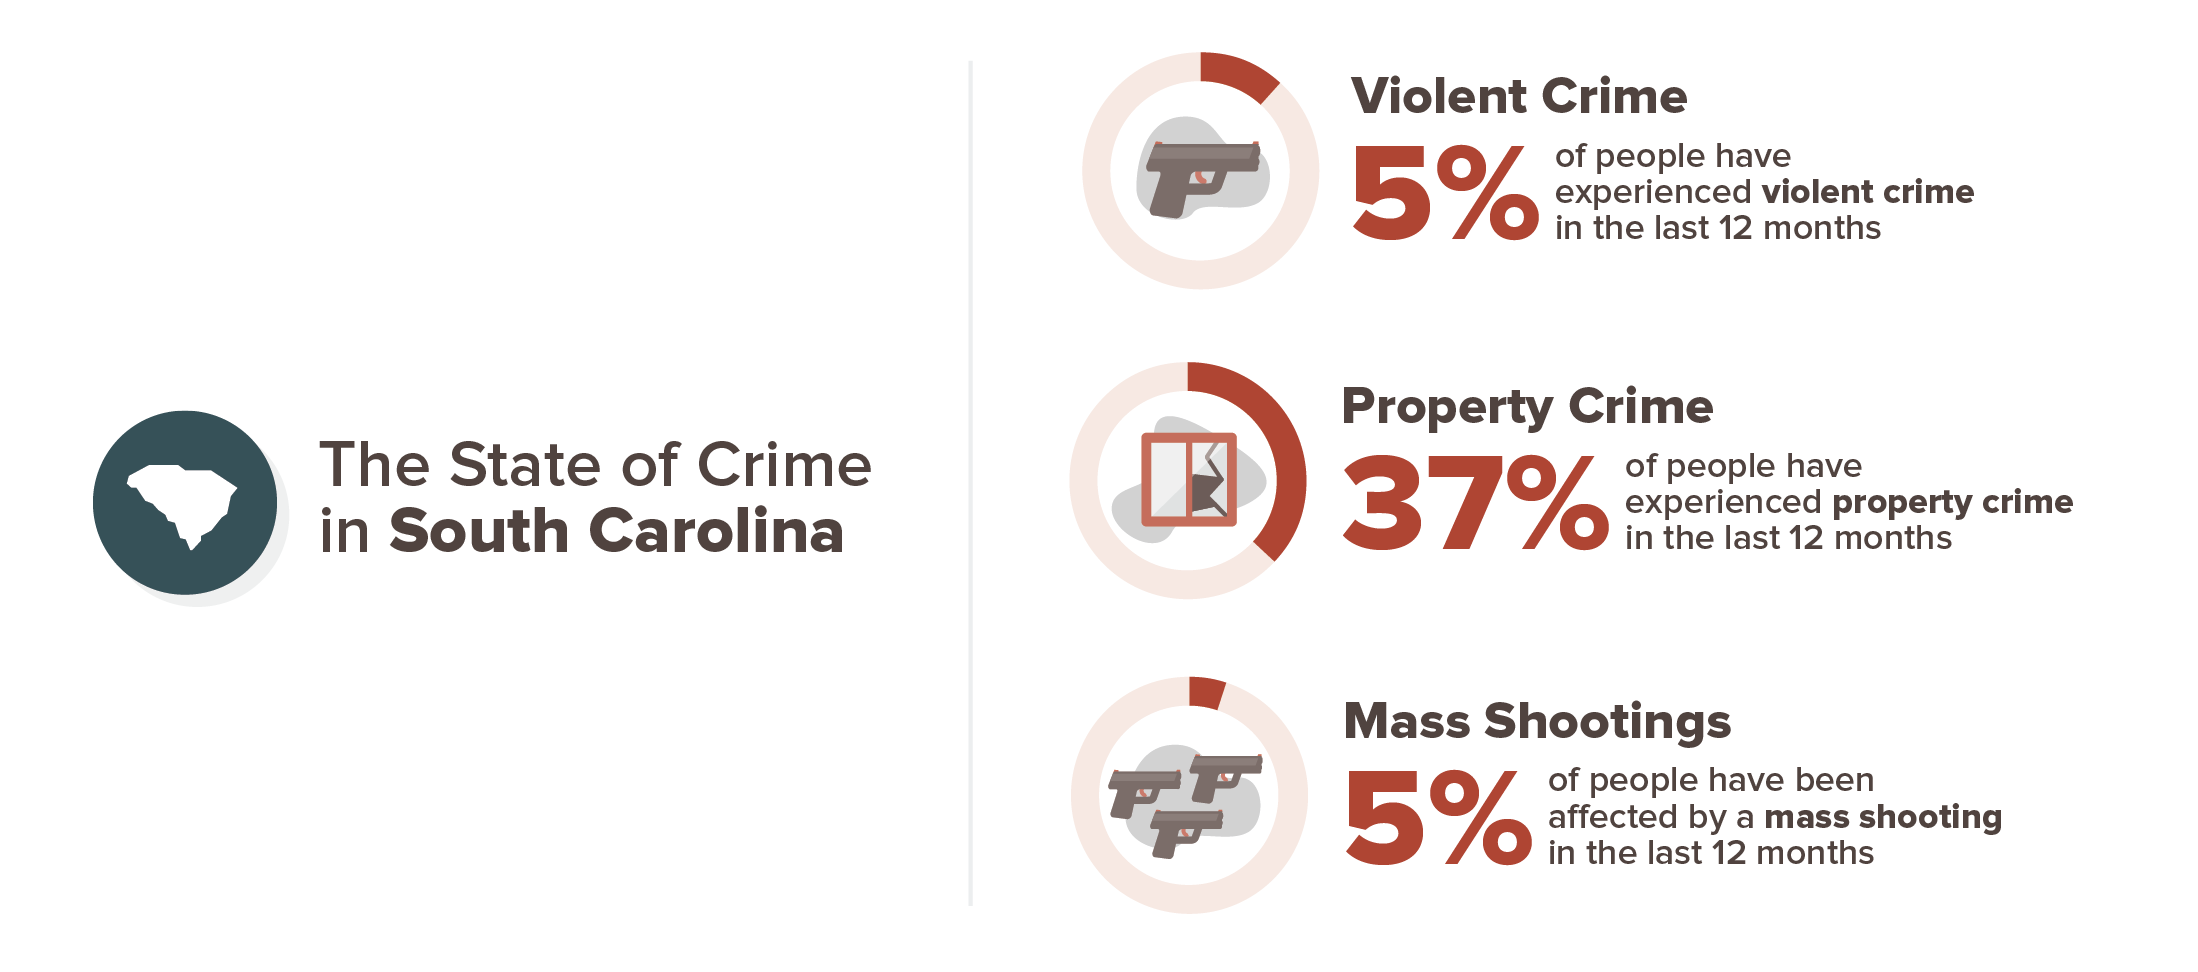 5 percent have experienced a violent crime, 37 percent have experienced property crime, 5 percent have experienced a mass shooting